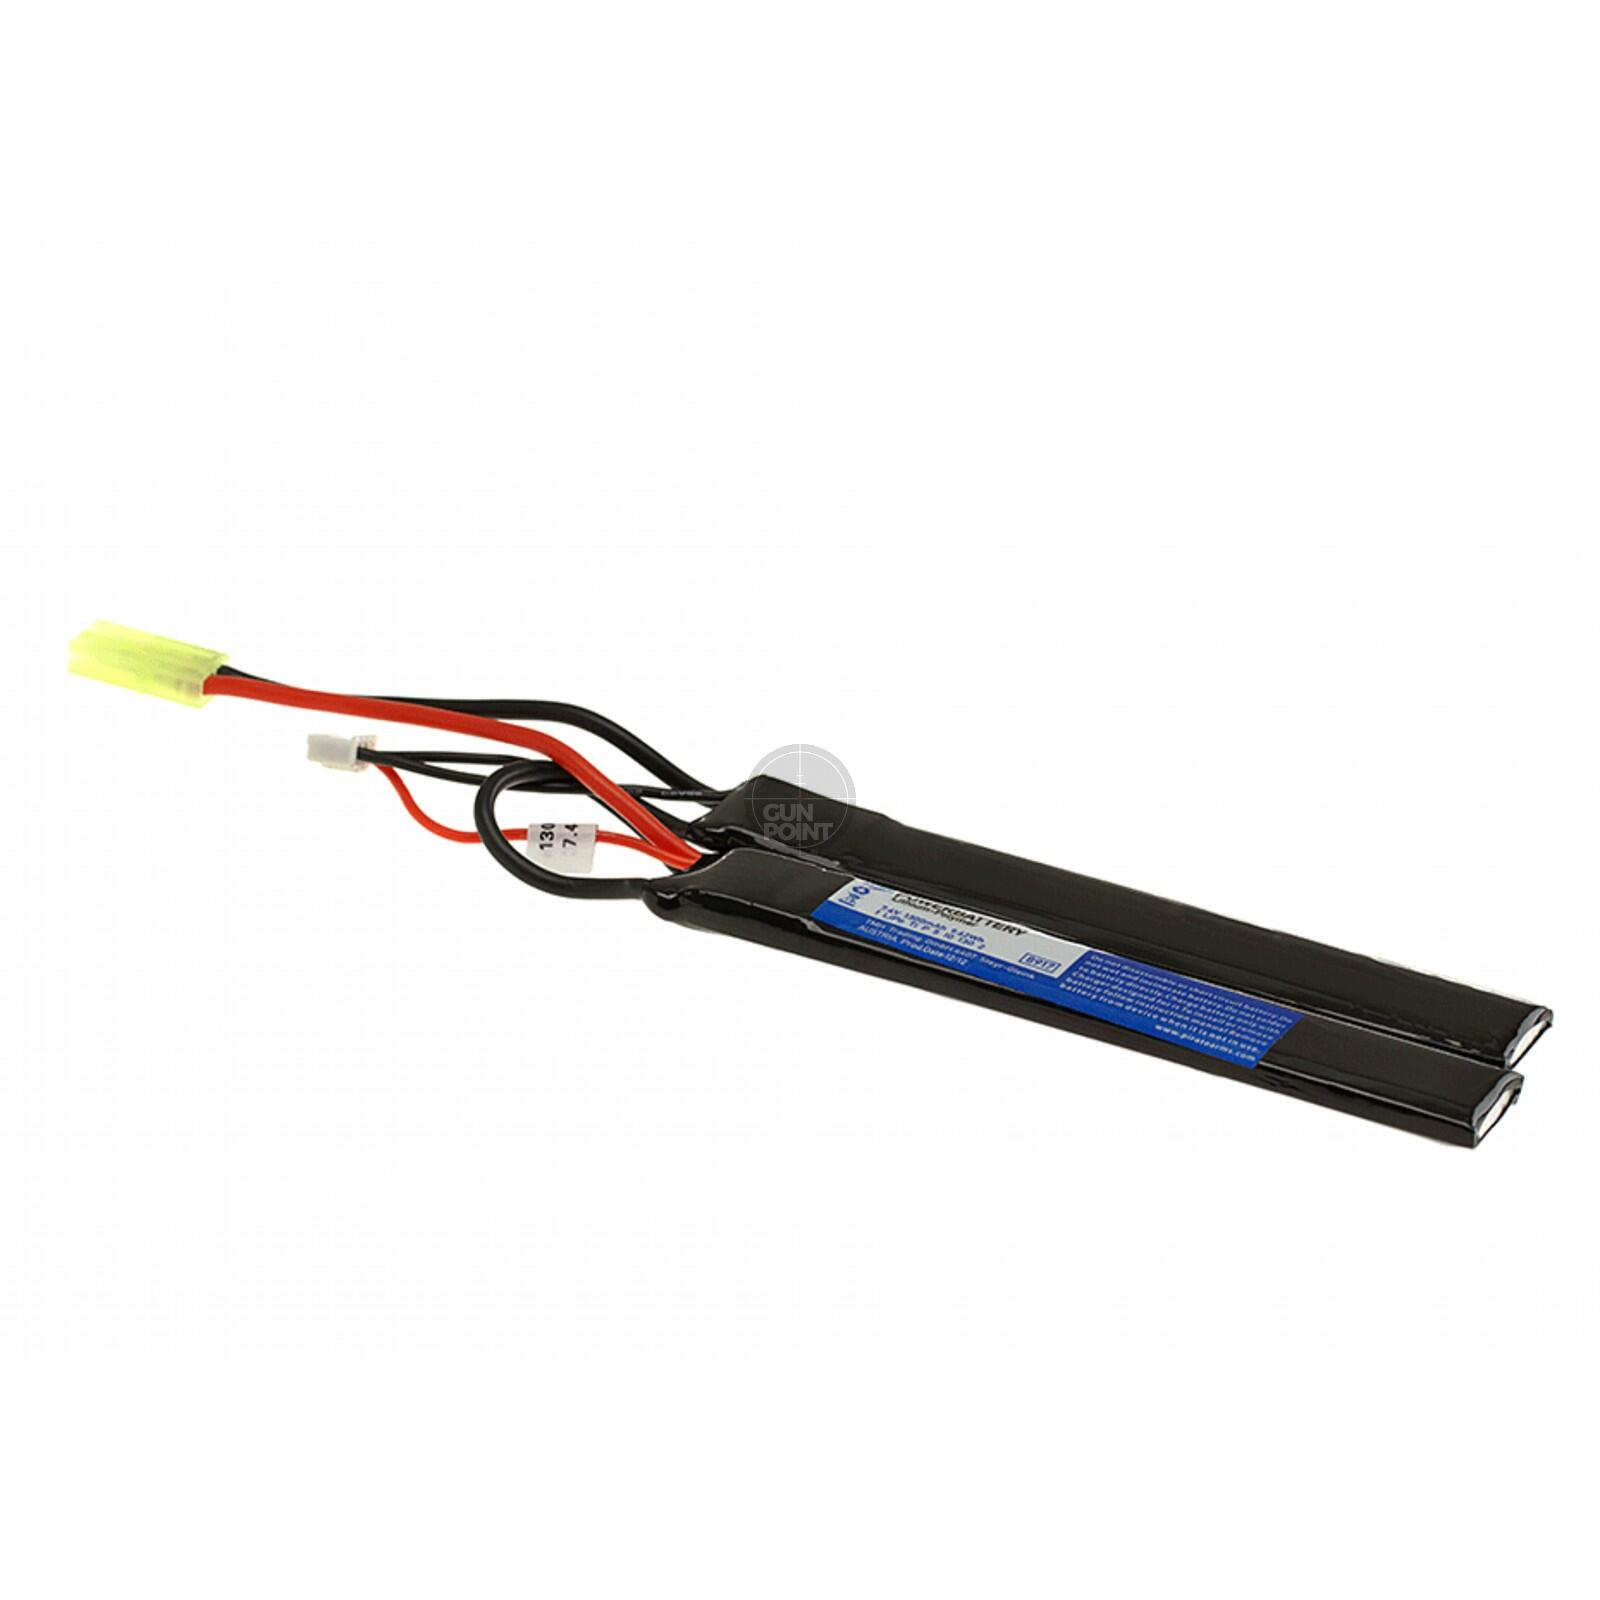 Pirate Arms - Lipo 7,4 V 1300 mAh 20C Twin Type